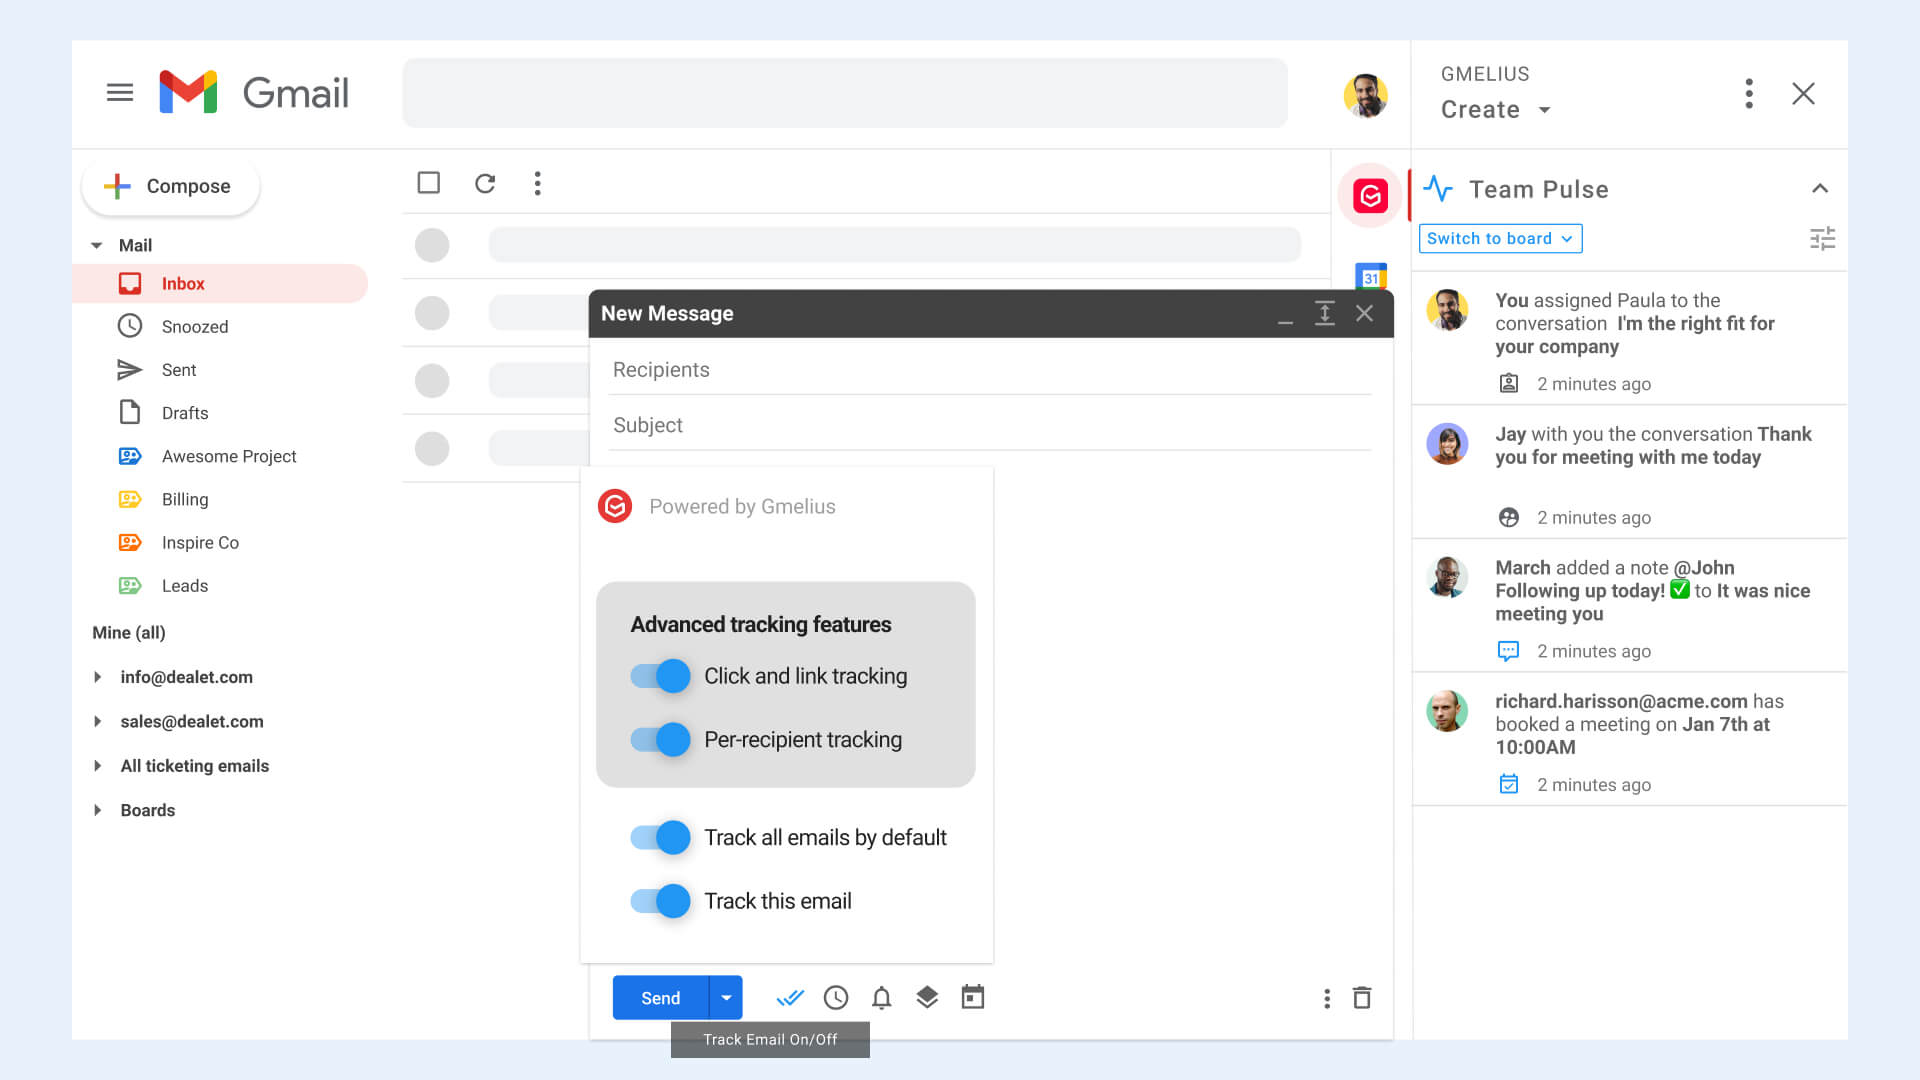 Tracking in Gmail